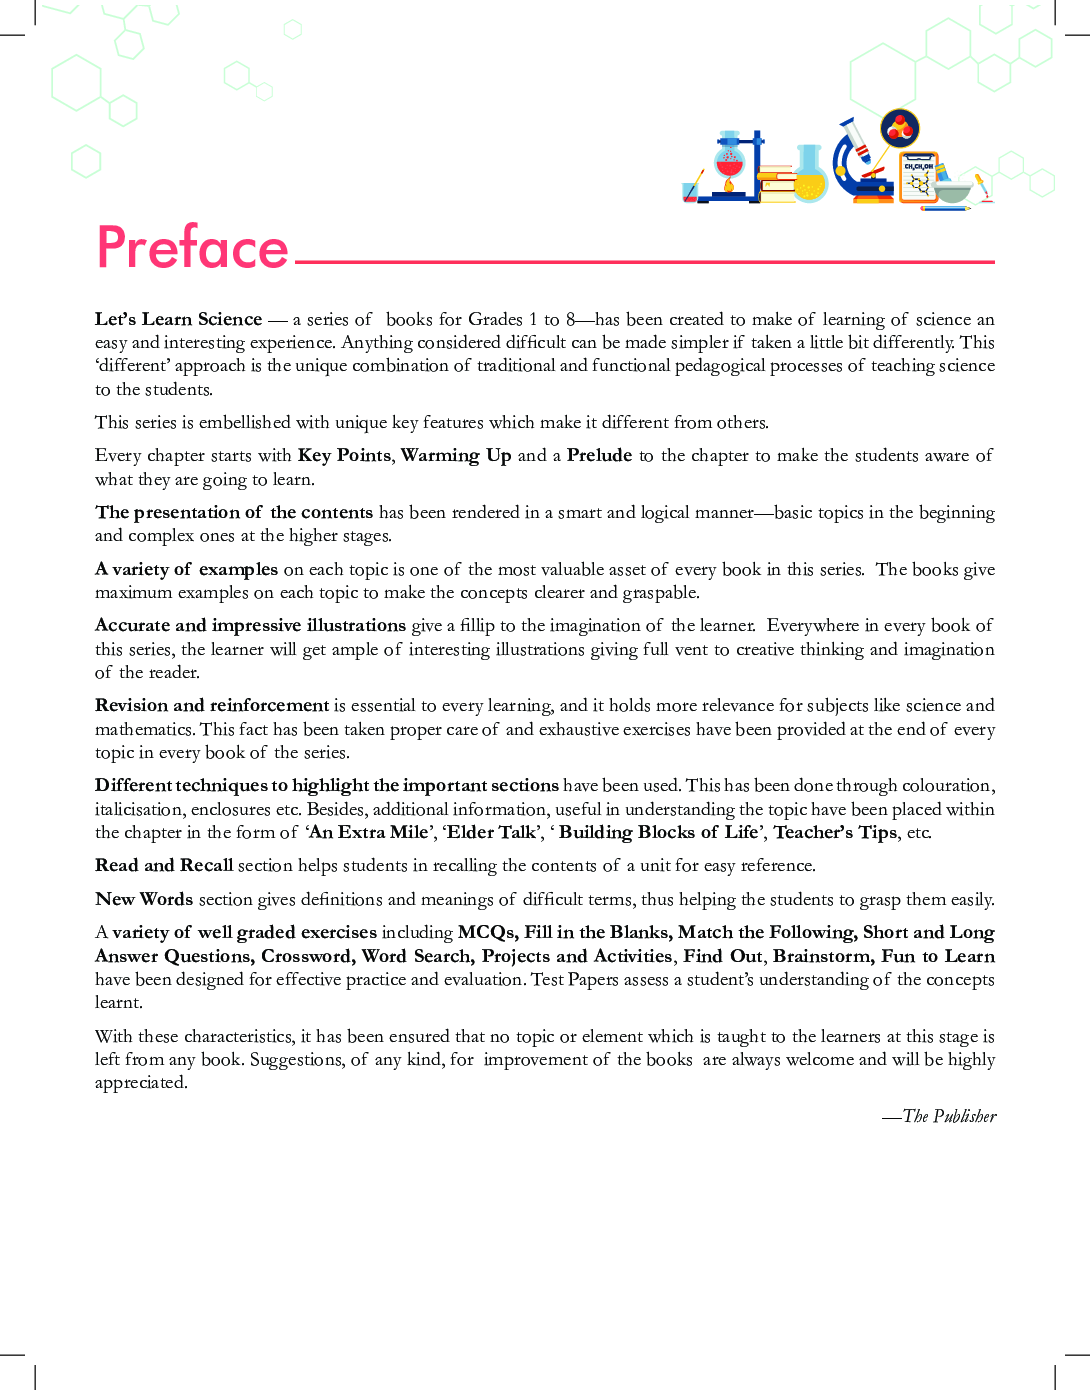 Educart CBSE Let's Learn Science Textbook For Class - VI - Page 4